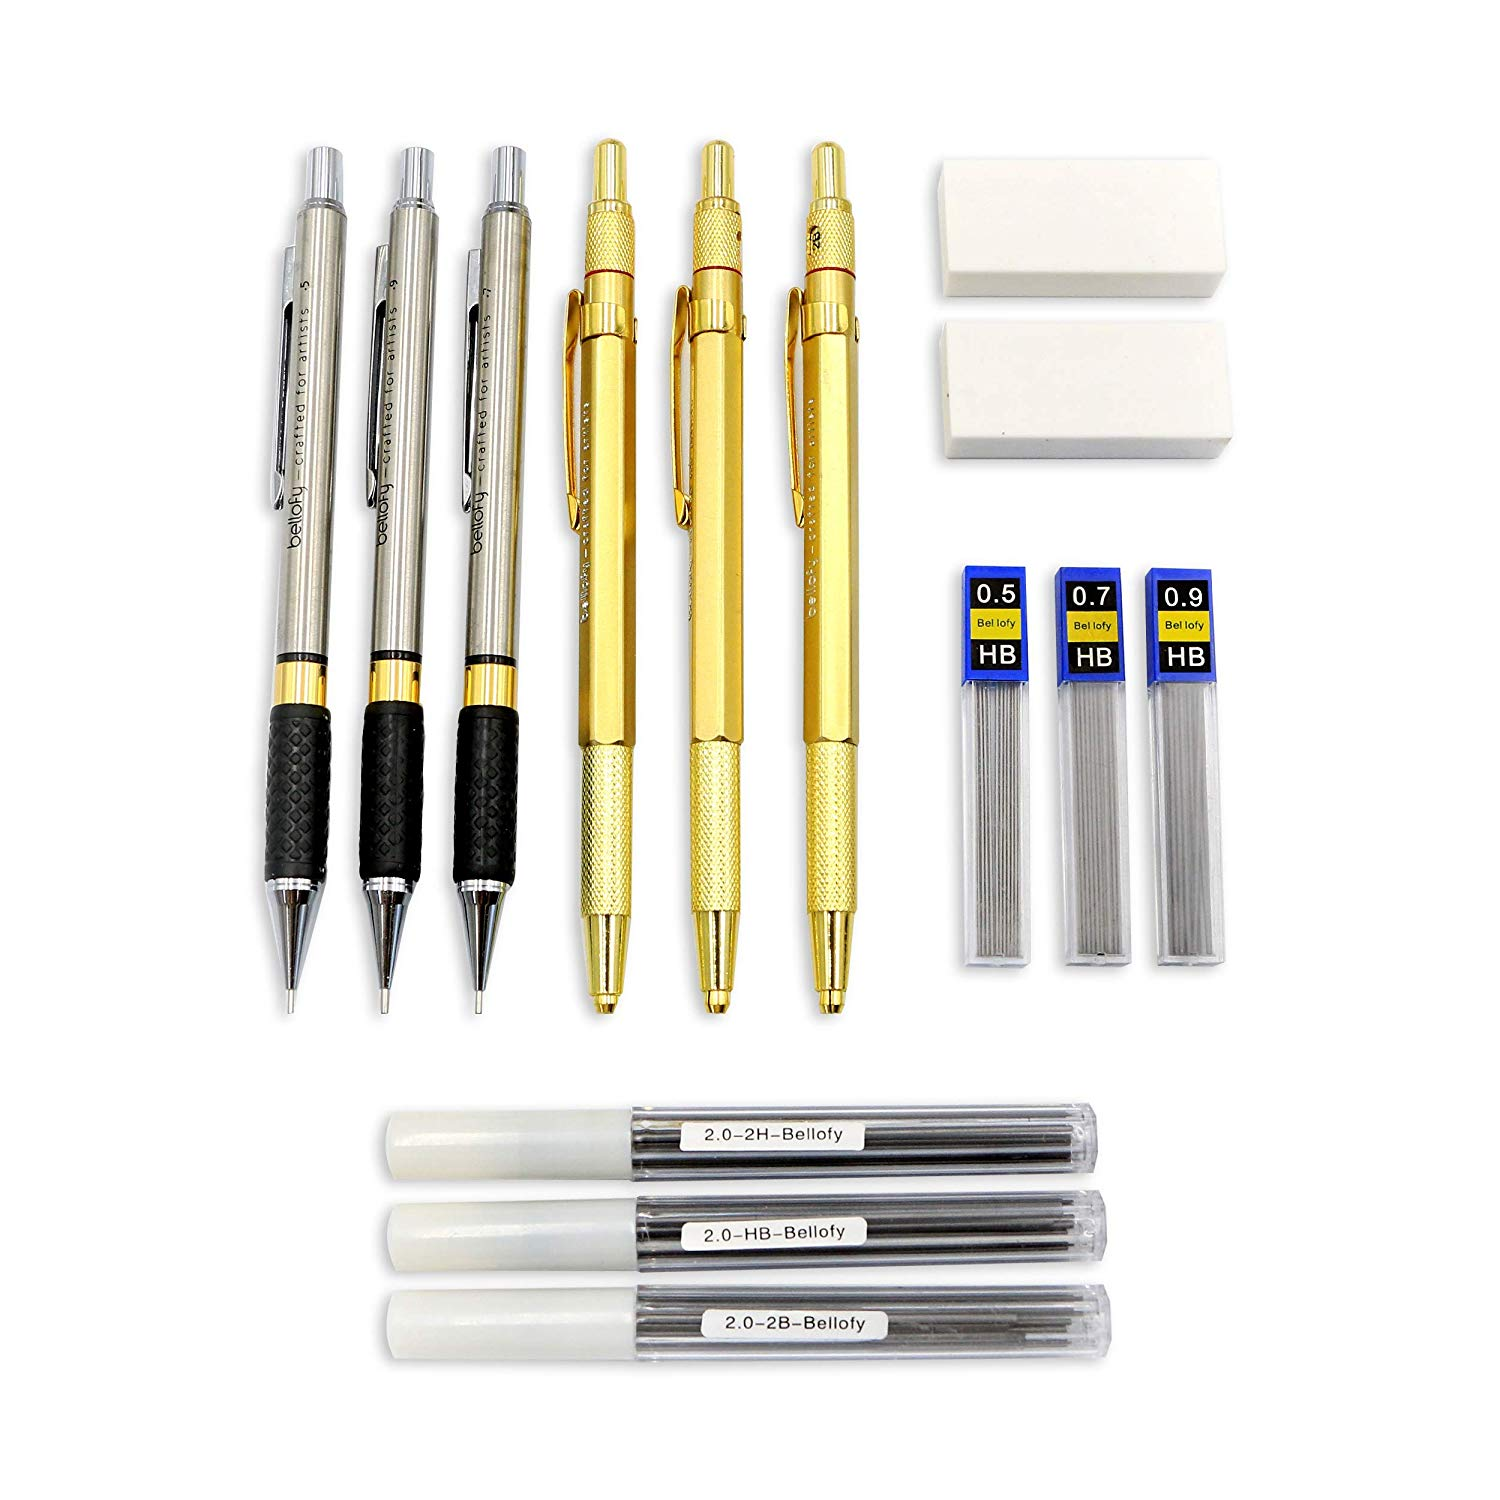 Bellofy Mechanical Pencils Set